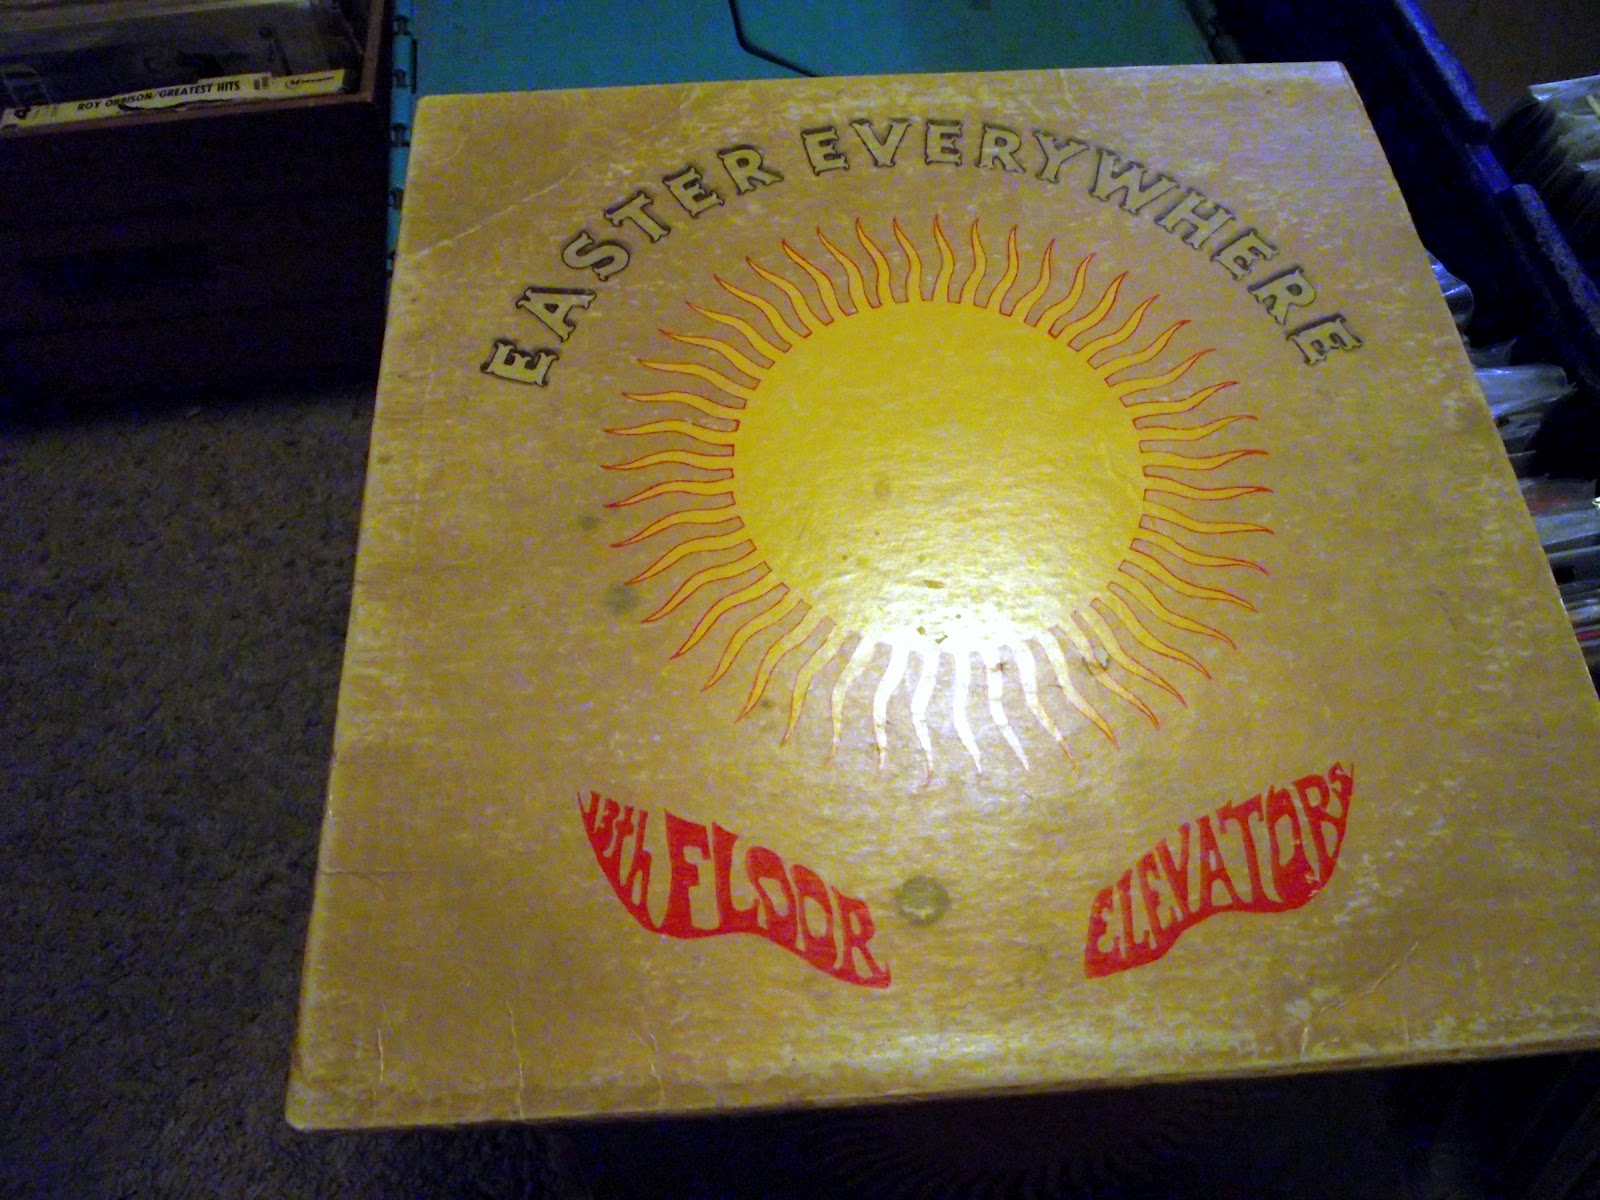 Texas psych psychedelic music 13th floor elevators for The 13th floor elevators easter everywhere